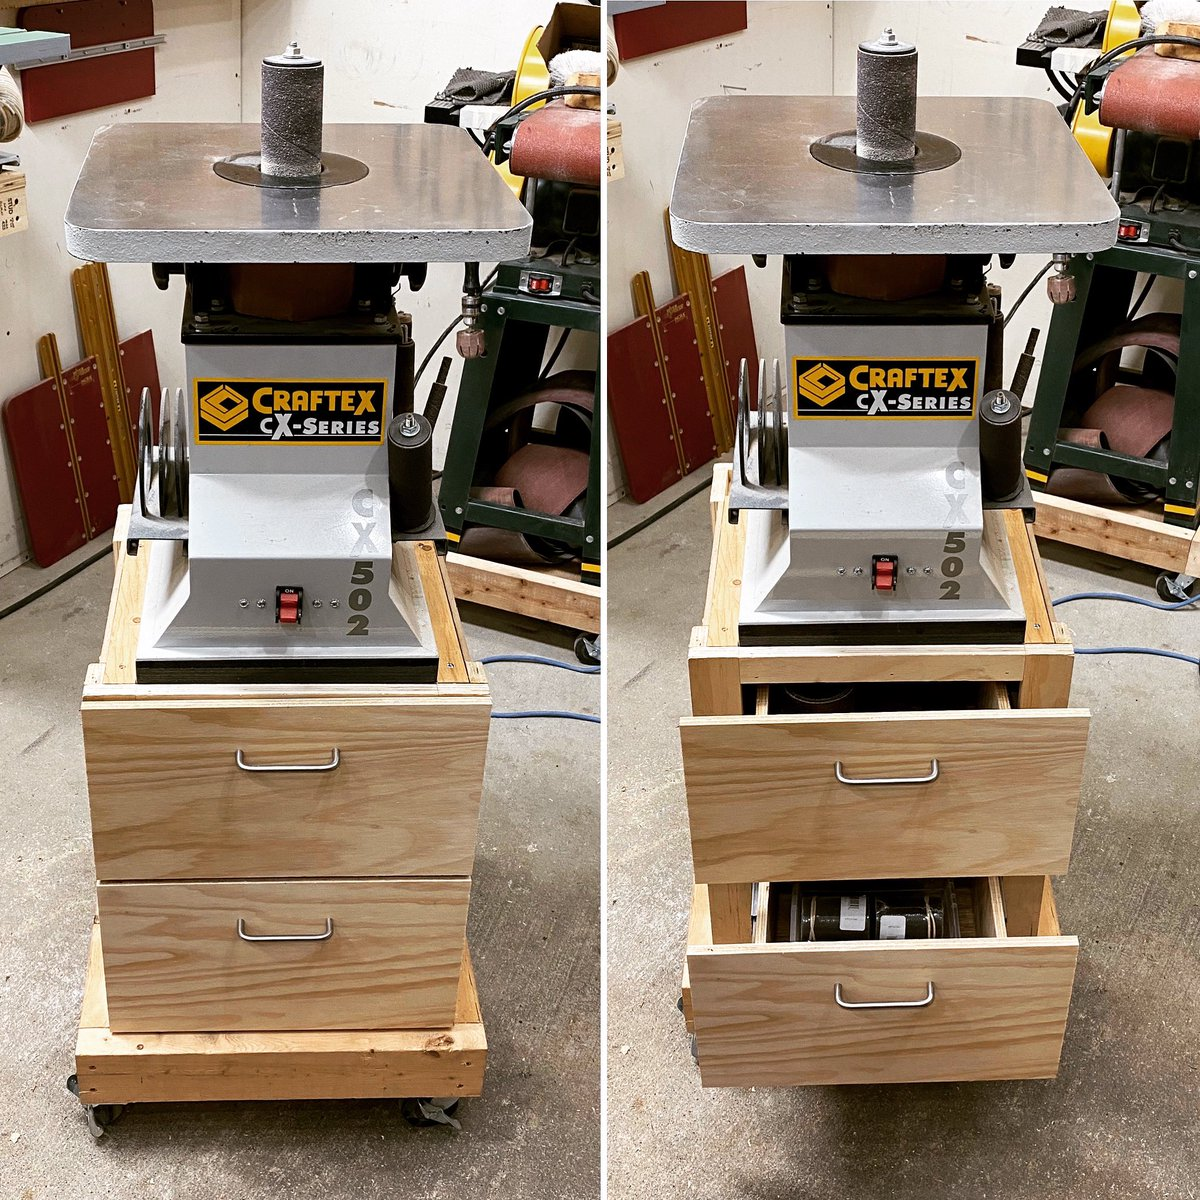 Day 32. Sunday project... added a couple drawers to my spindle sander stand. #ldnont #workshop #shopstorage #canadianmakers  #handmadeincanada  #canadianmaker #workshop #smallshop #shopmod #makeityourself #workshops #handcrafted #handmade #madeincanada #shop519 #makersmovement<br>http://pic.twitter.com/eSv3wLQy8U